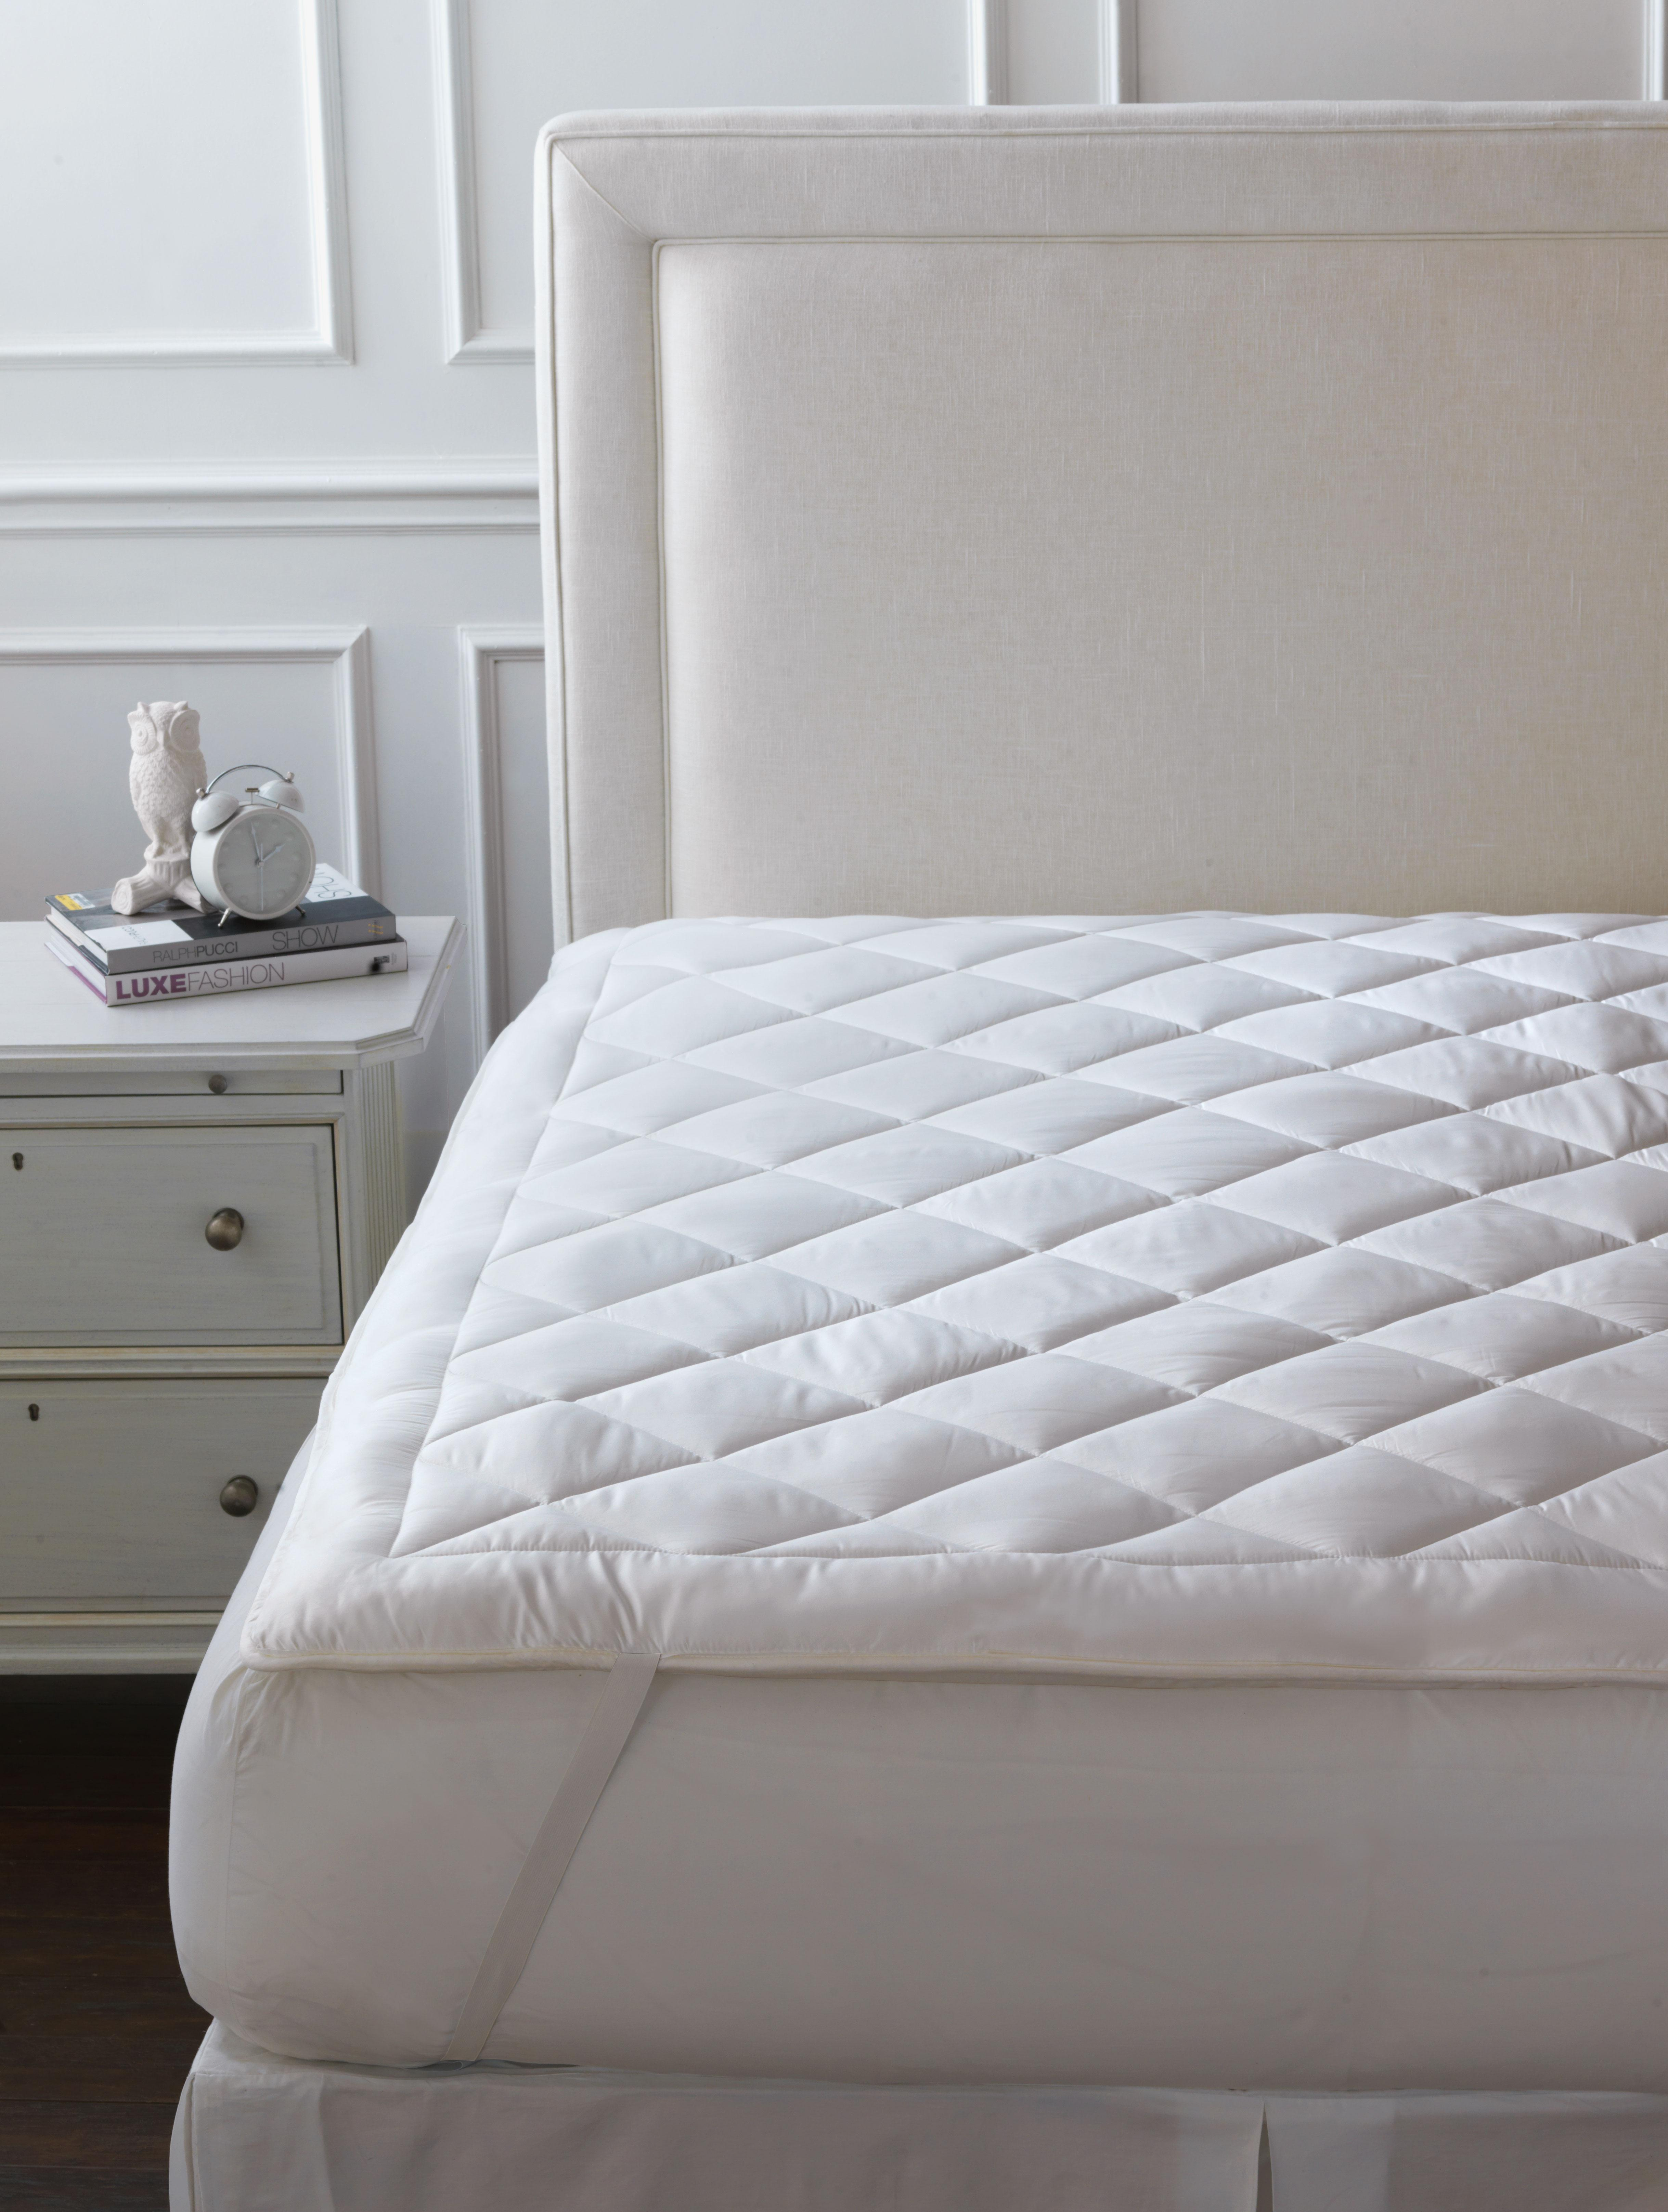 s art upholstered button for mattress pin white tufting another idea room corner nyla full van with mattresses daybed